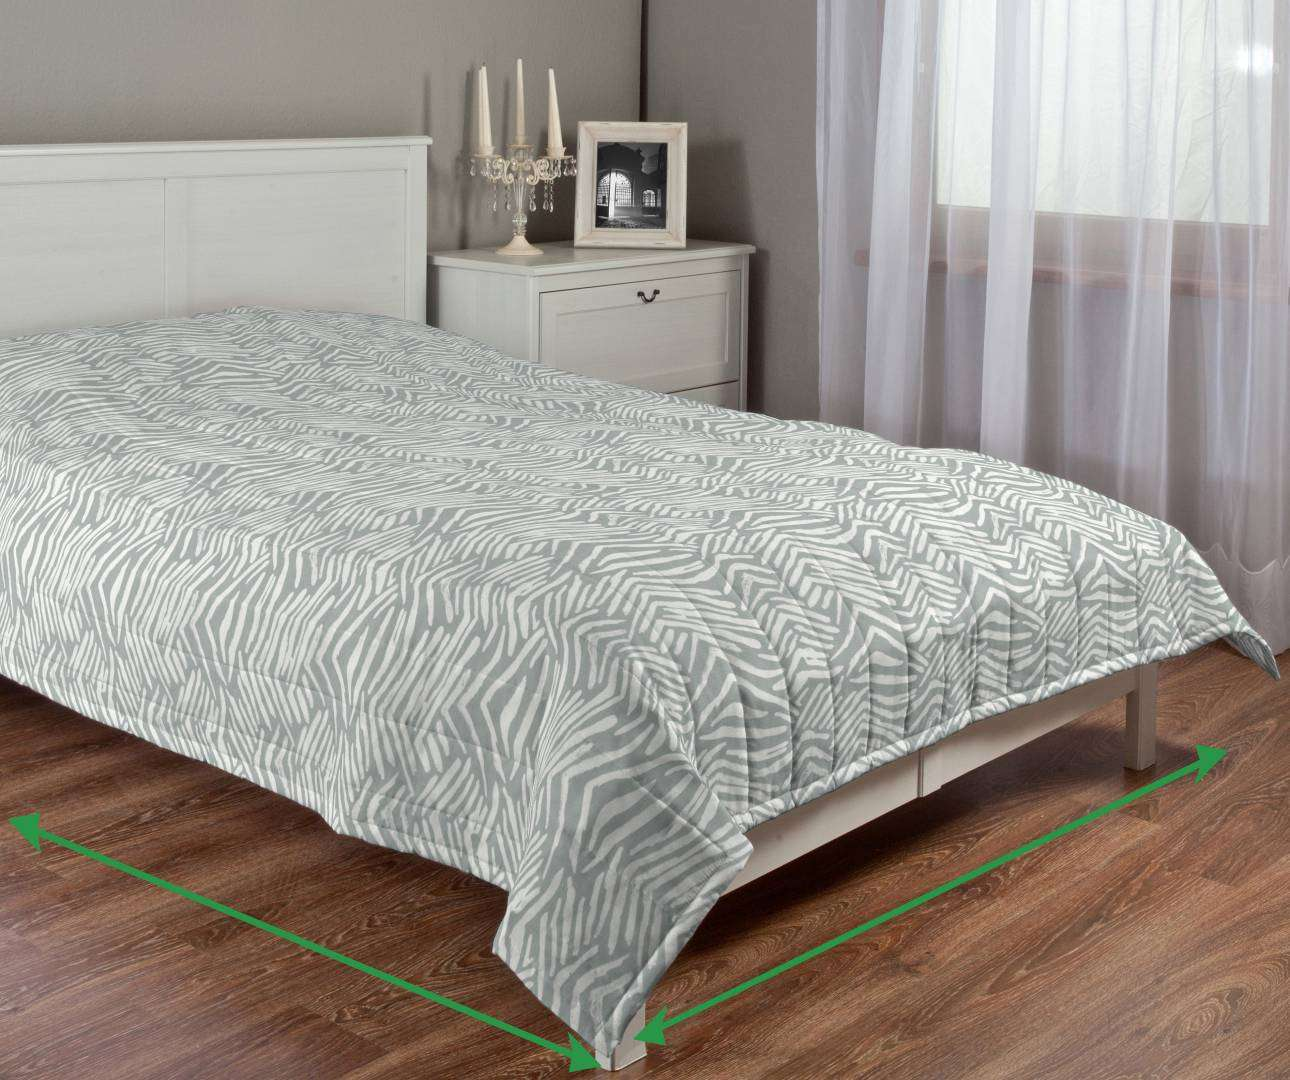 Quilted throw (vertical quilt pattern) in collection SALE, fabric: 135-04